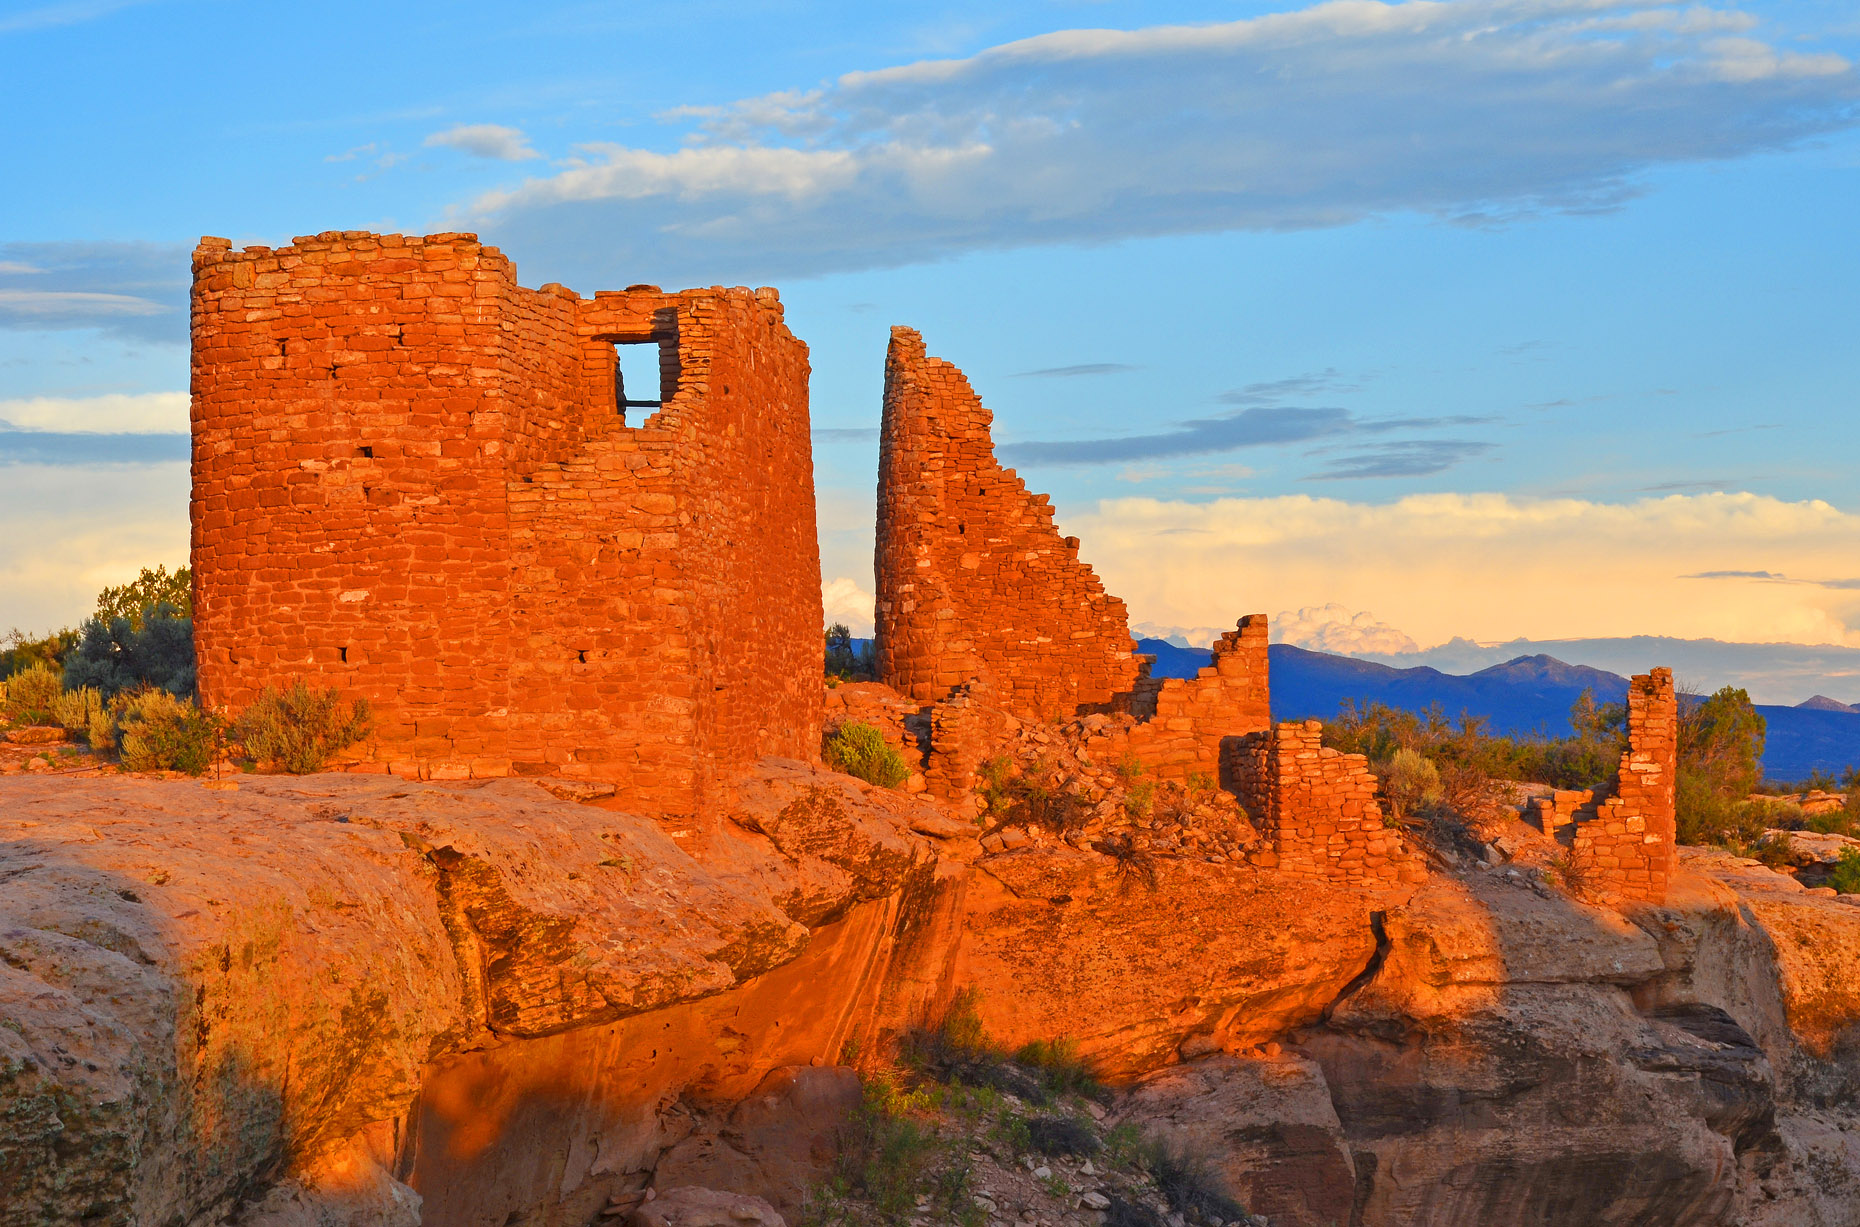 Hovenweep Castle, John Annerino, William Henry Jackson, Hovenweep National Monument, UT